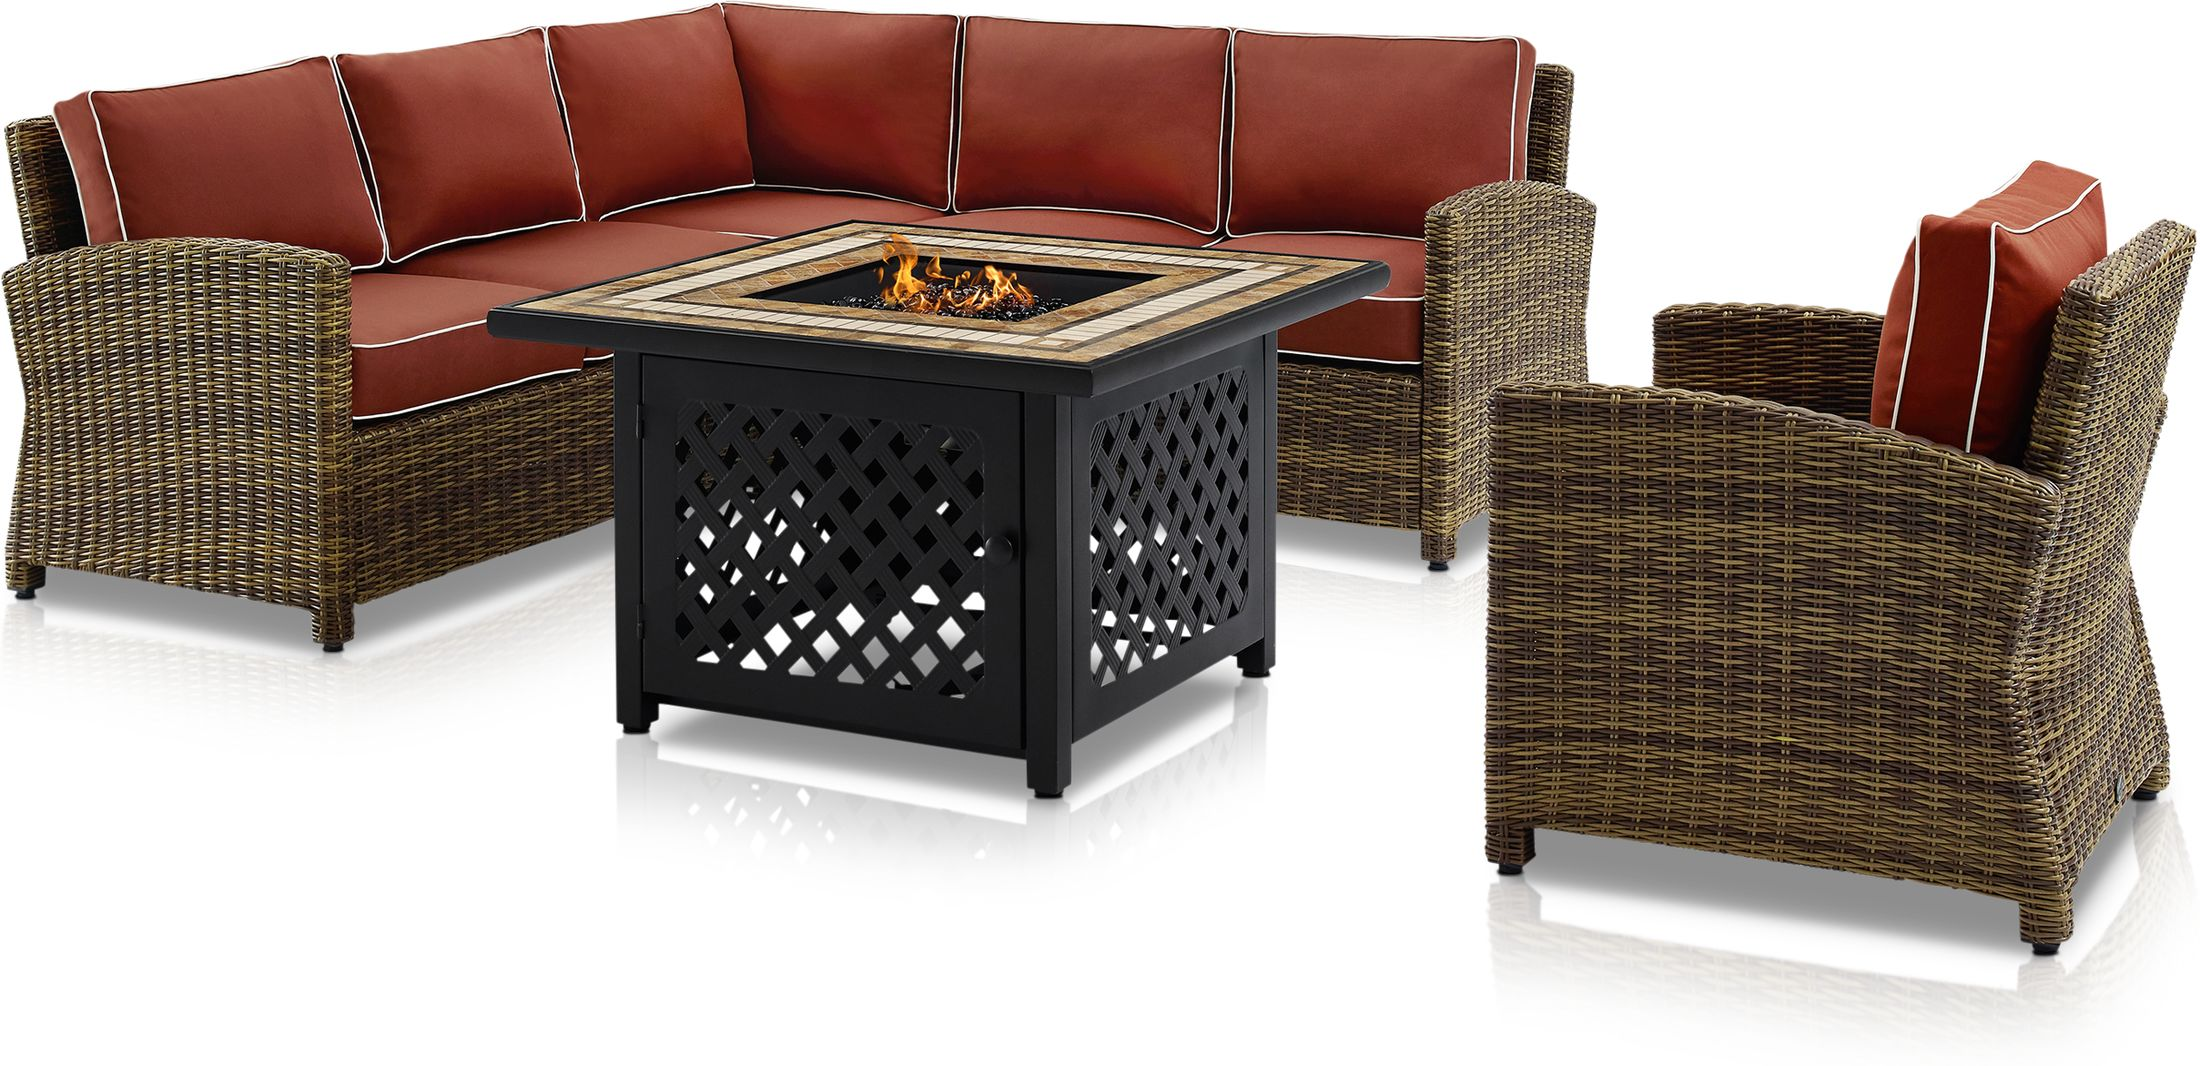 Outdoor Furniture - Destin 3-Piece Outdoor Sectional, Chair and Fire Table Set